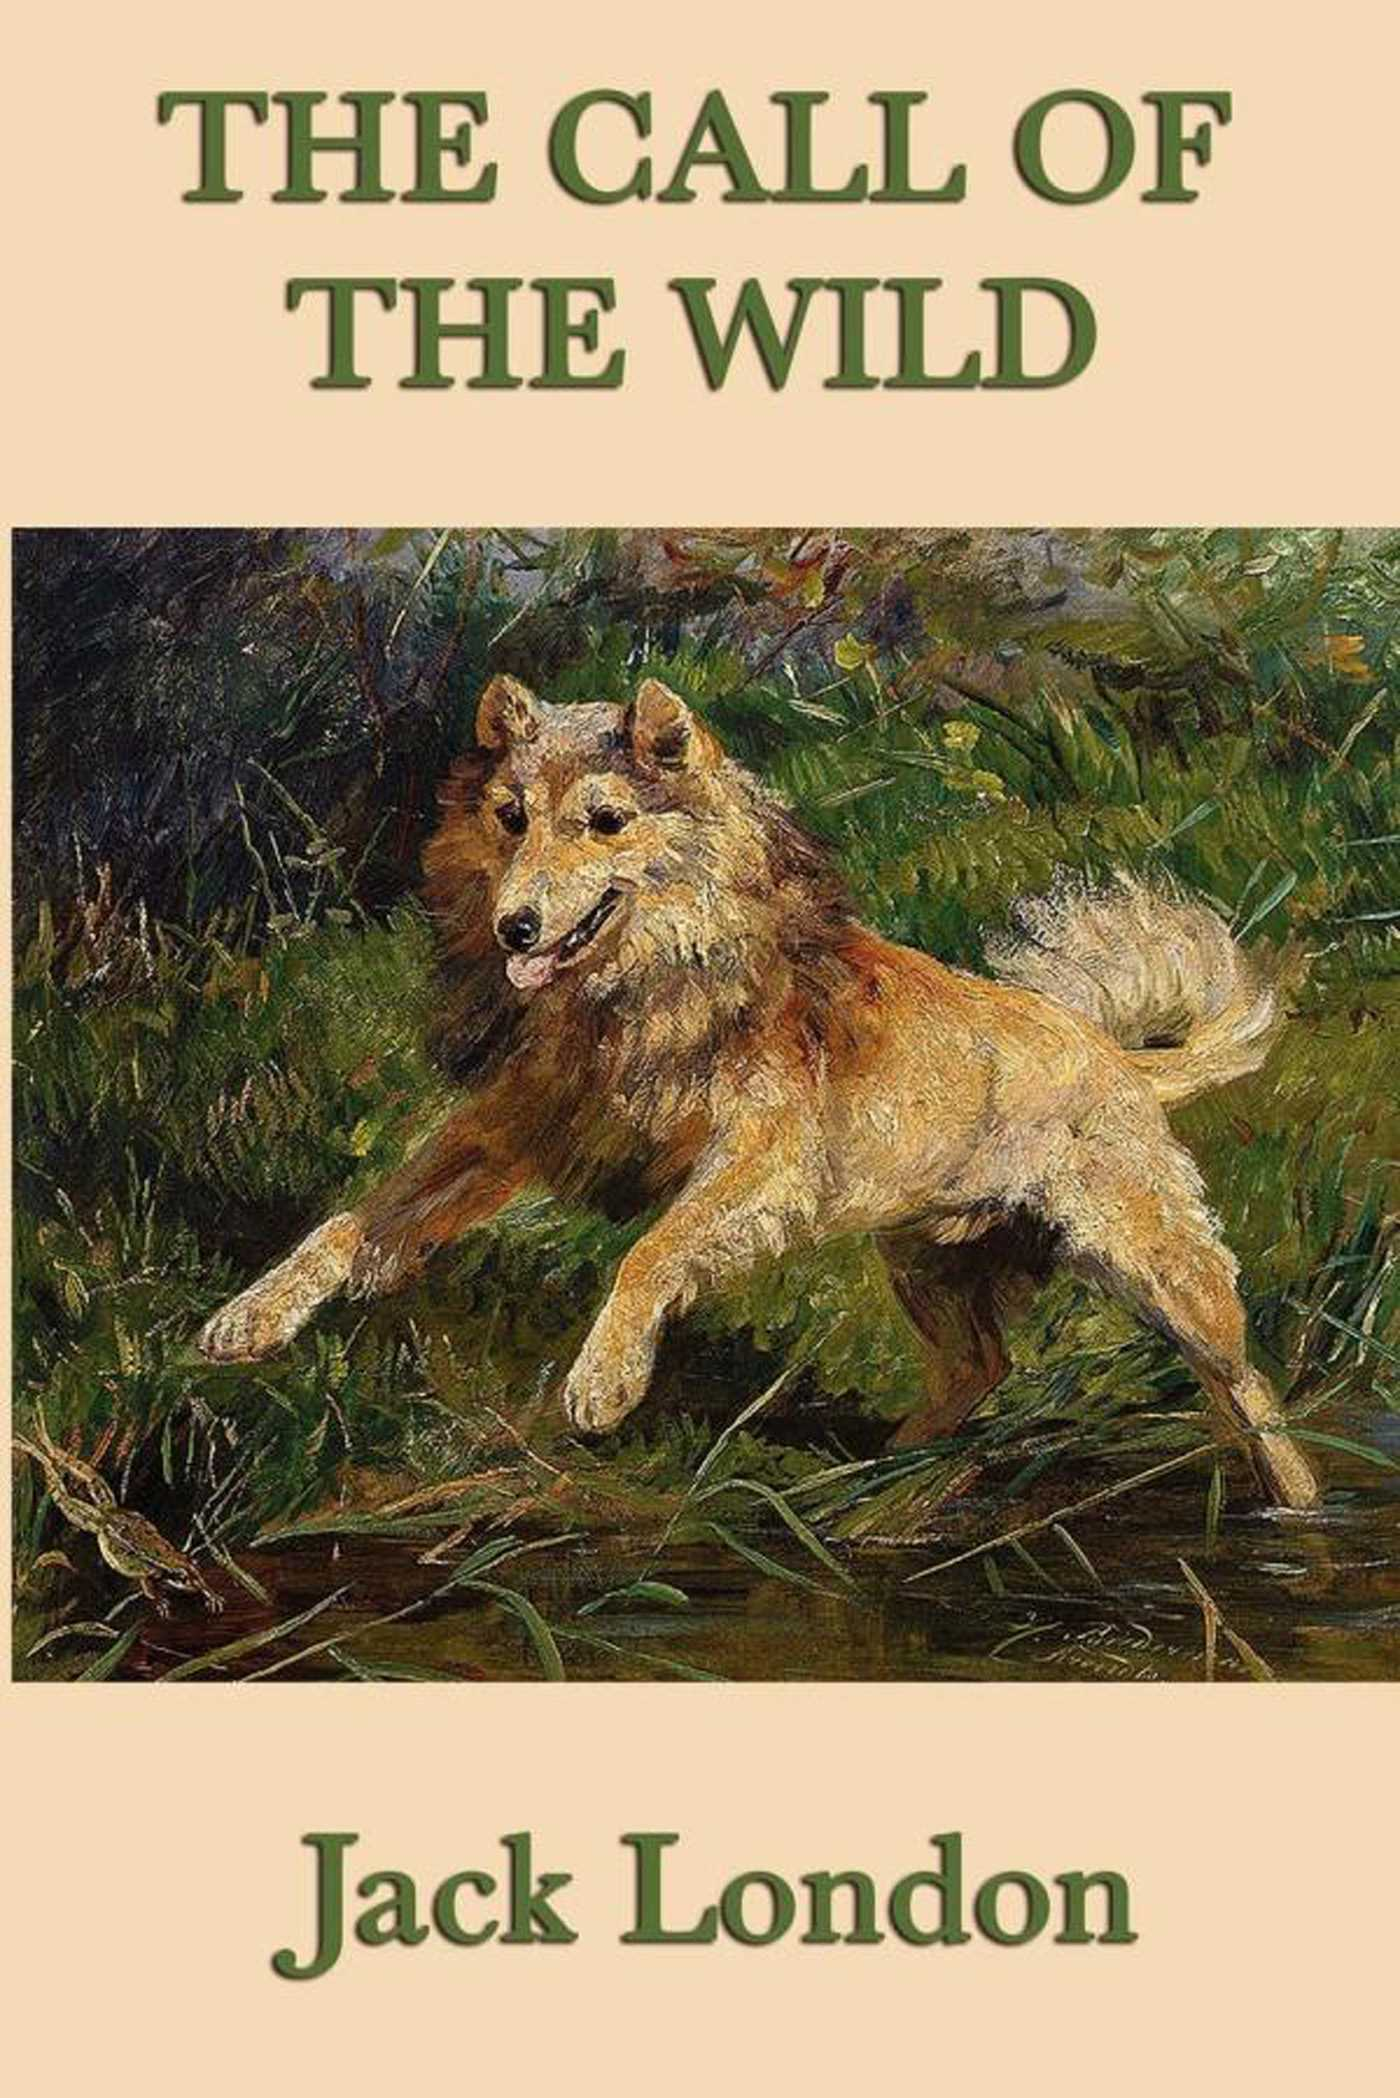 a thematic summary of the novel call of the wild by jack london A summary of themes in jack london's the call of the wild  but london is not content to make the struggle for survival the central theme of his novel instead,.